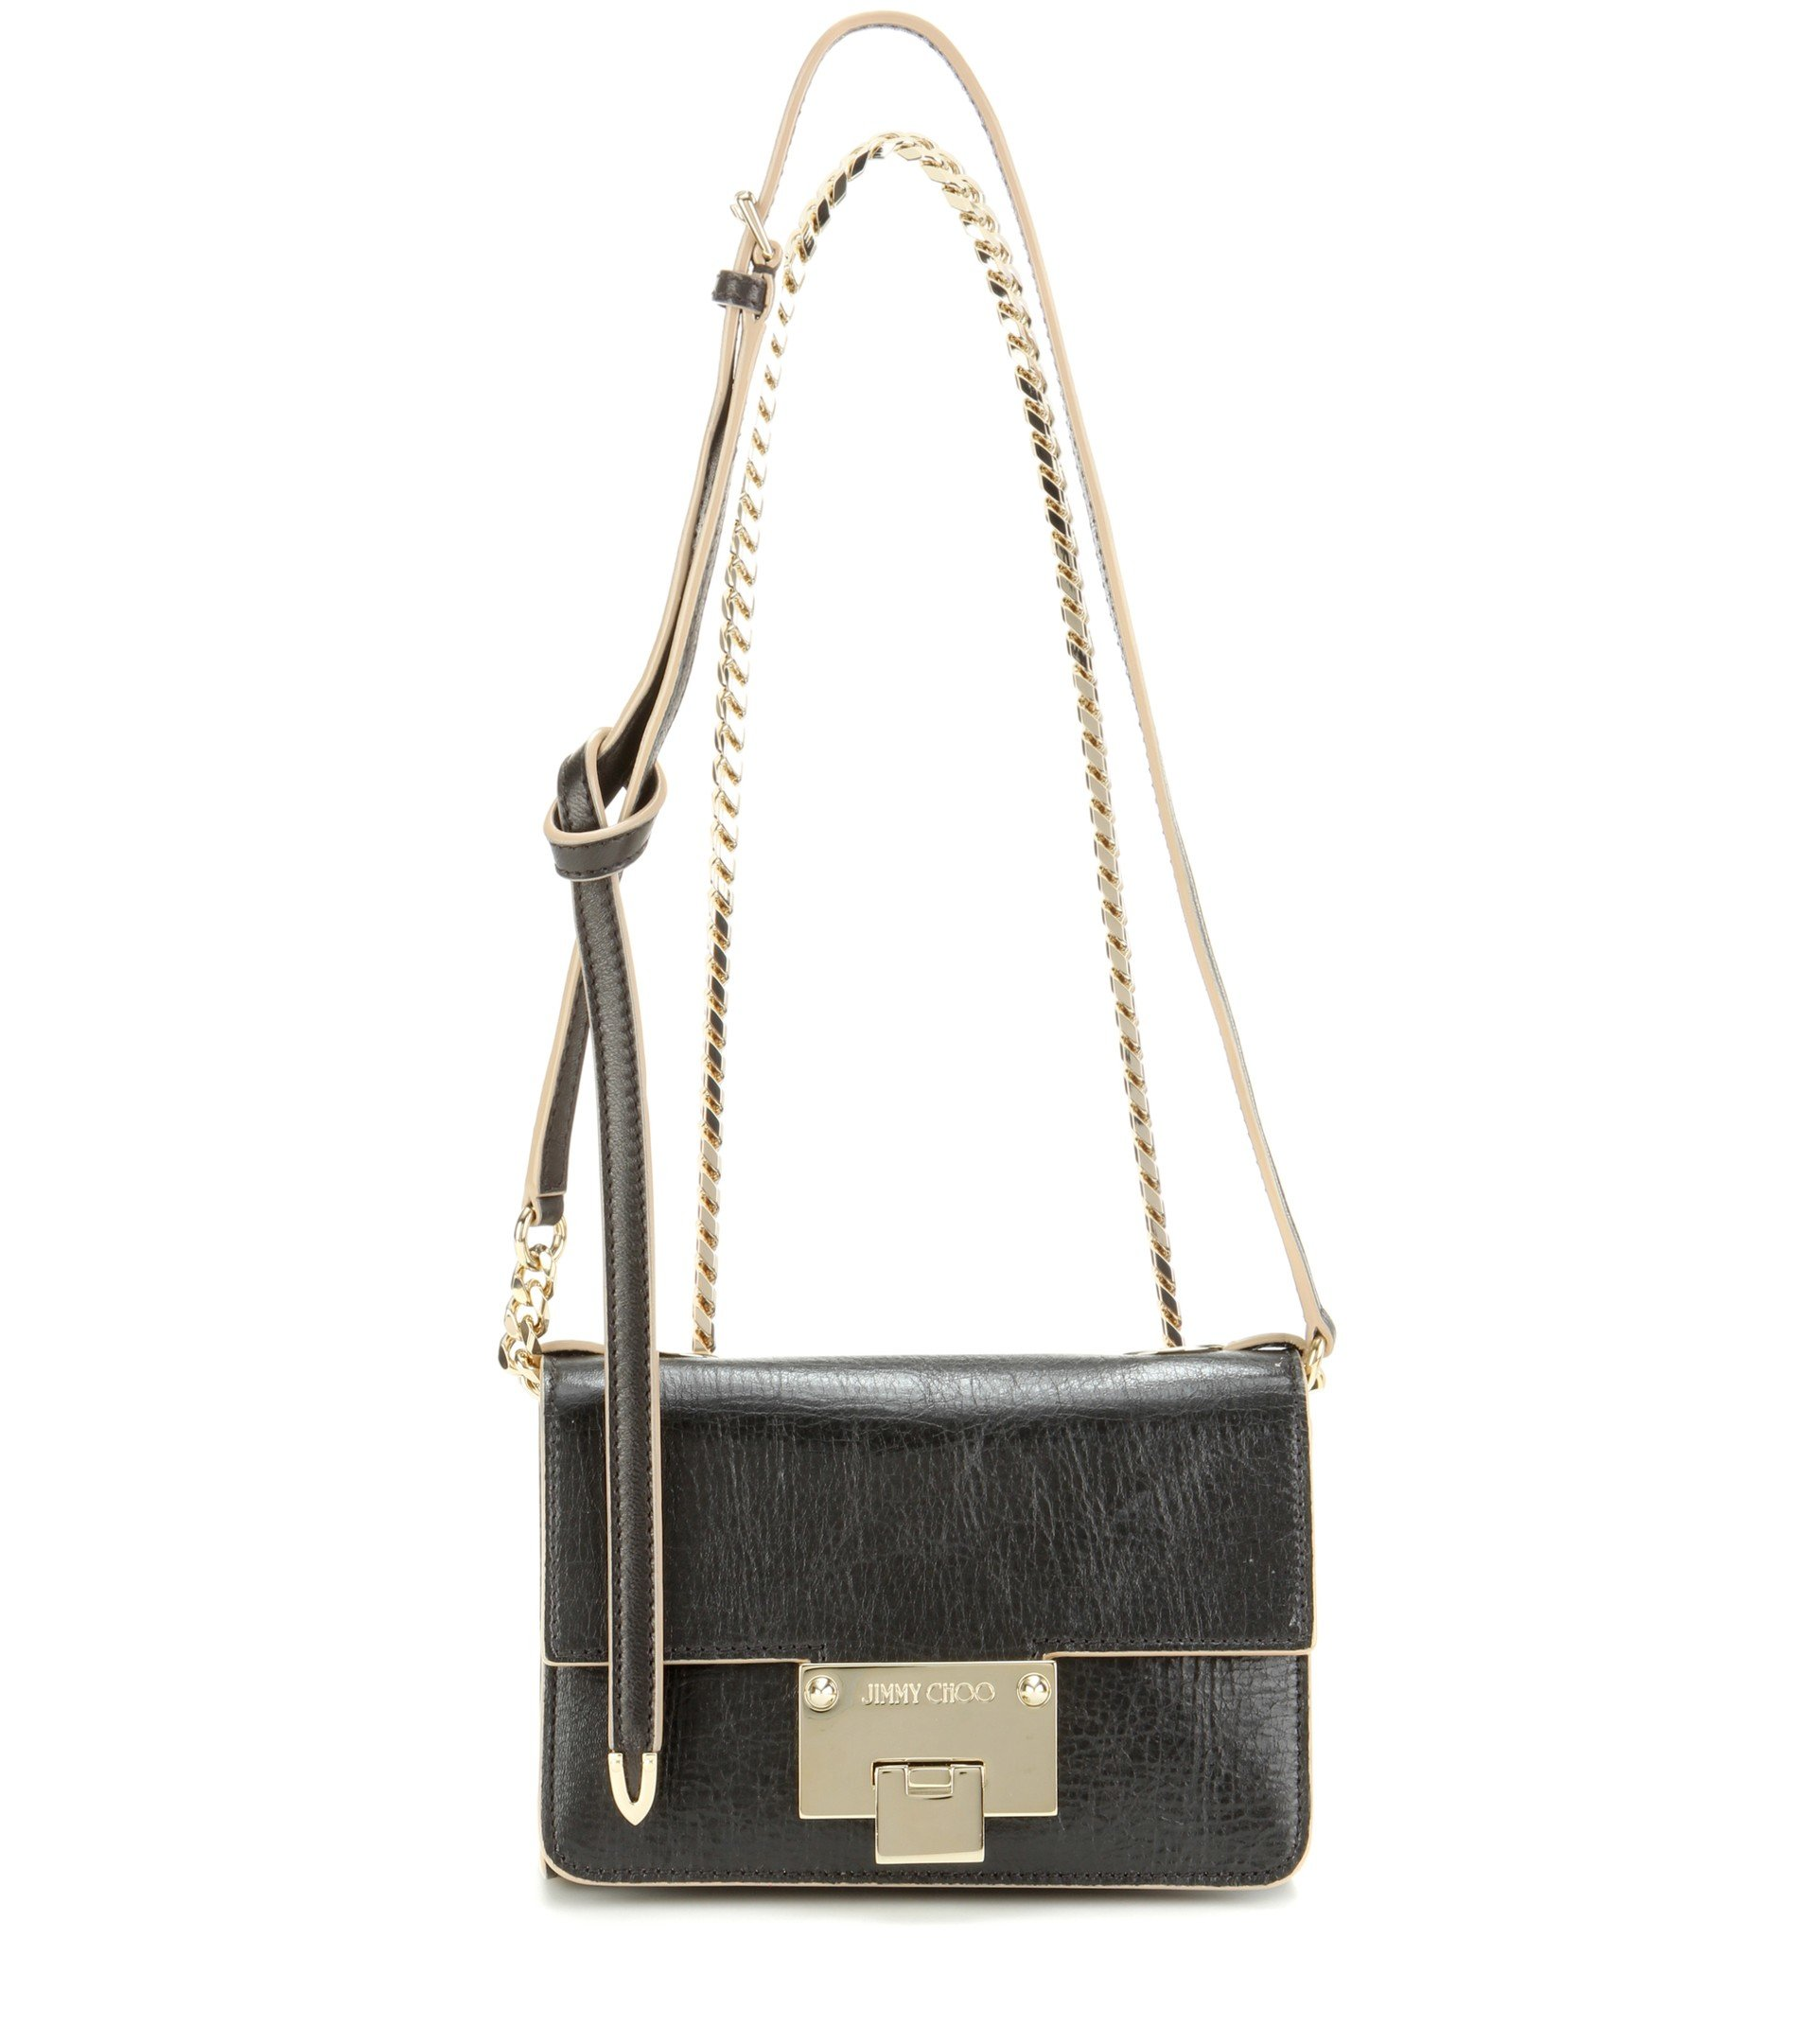 Rebel Soft Mini suede shoulder bag Jimmy Choo London dCE4veyur